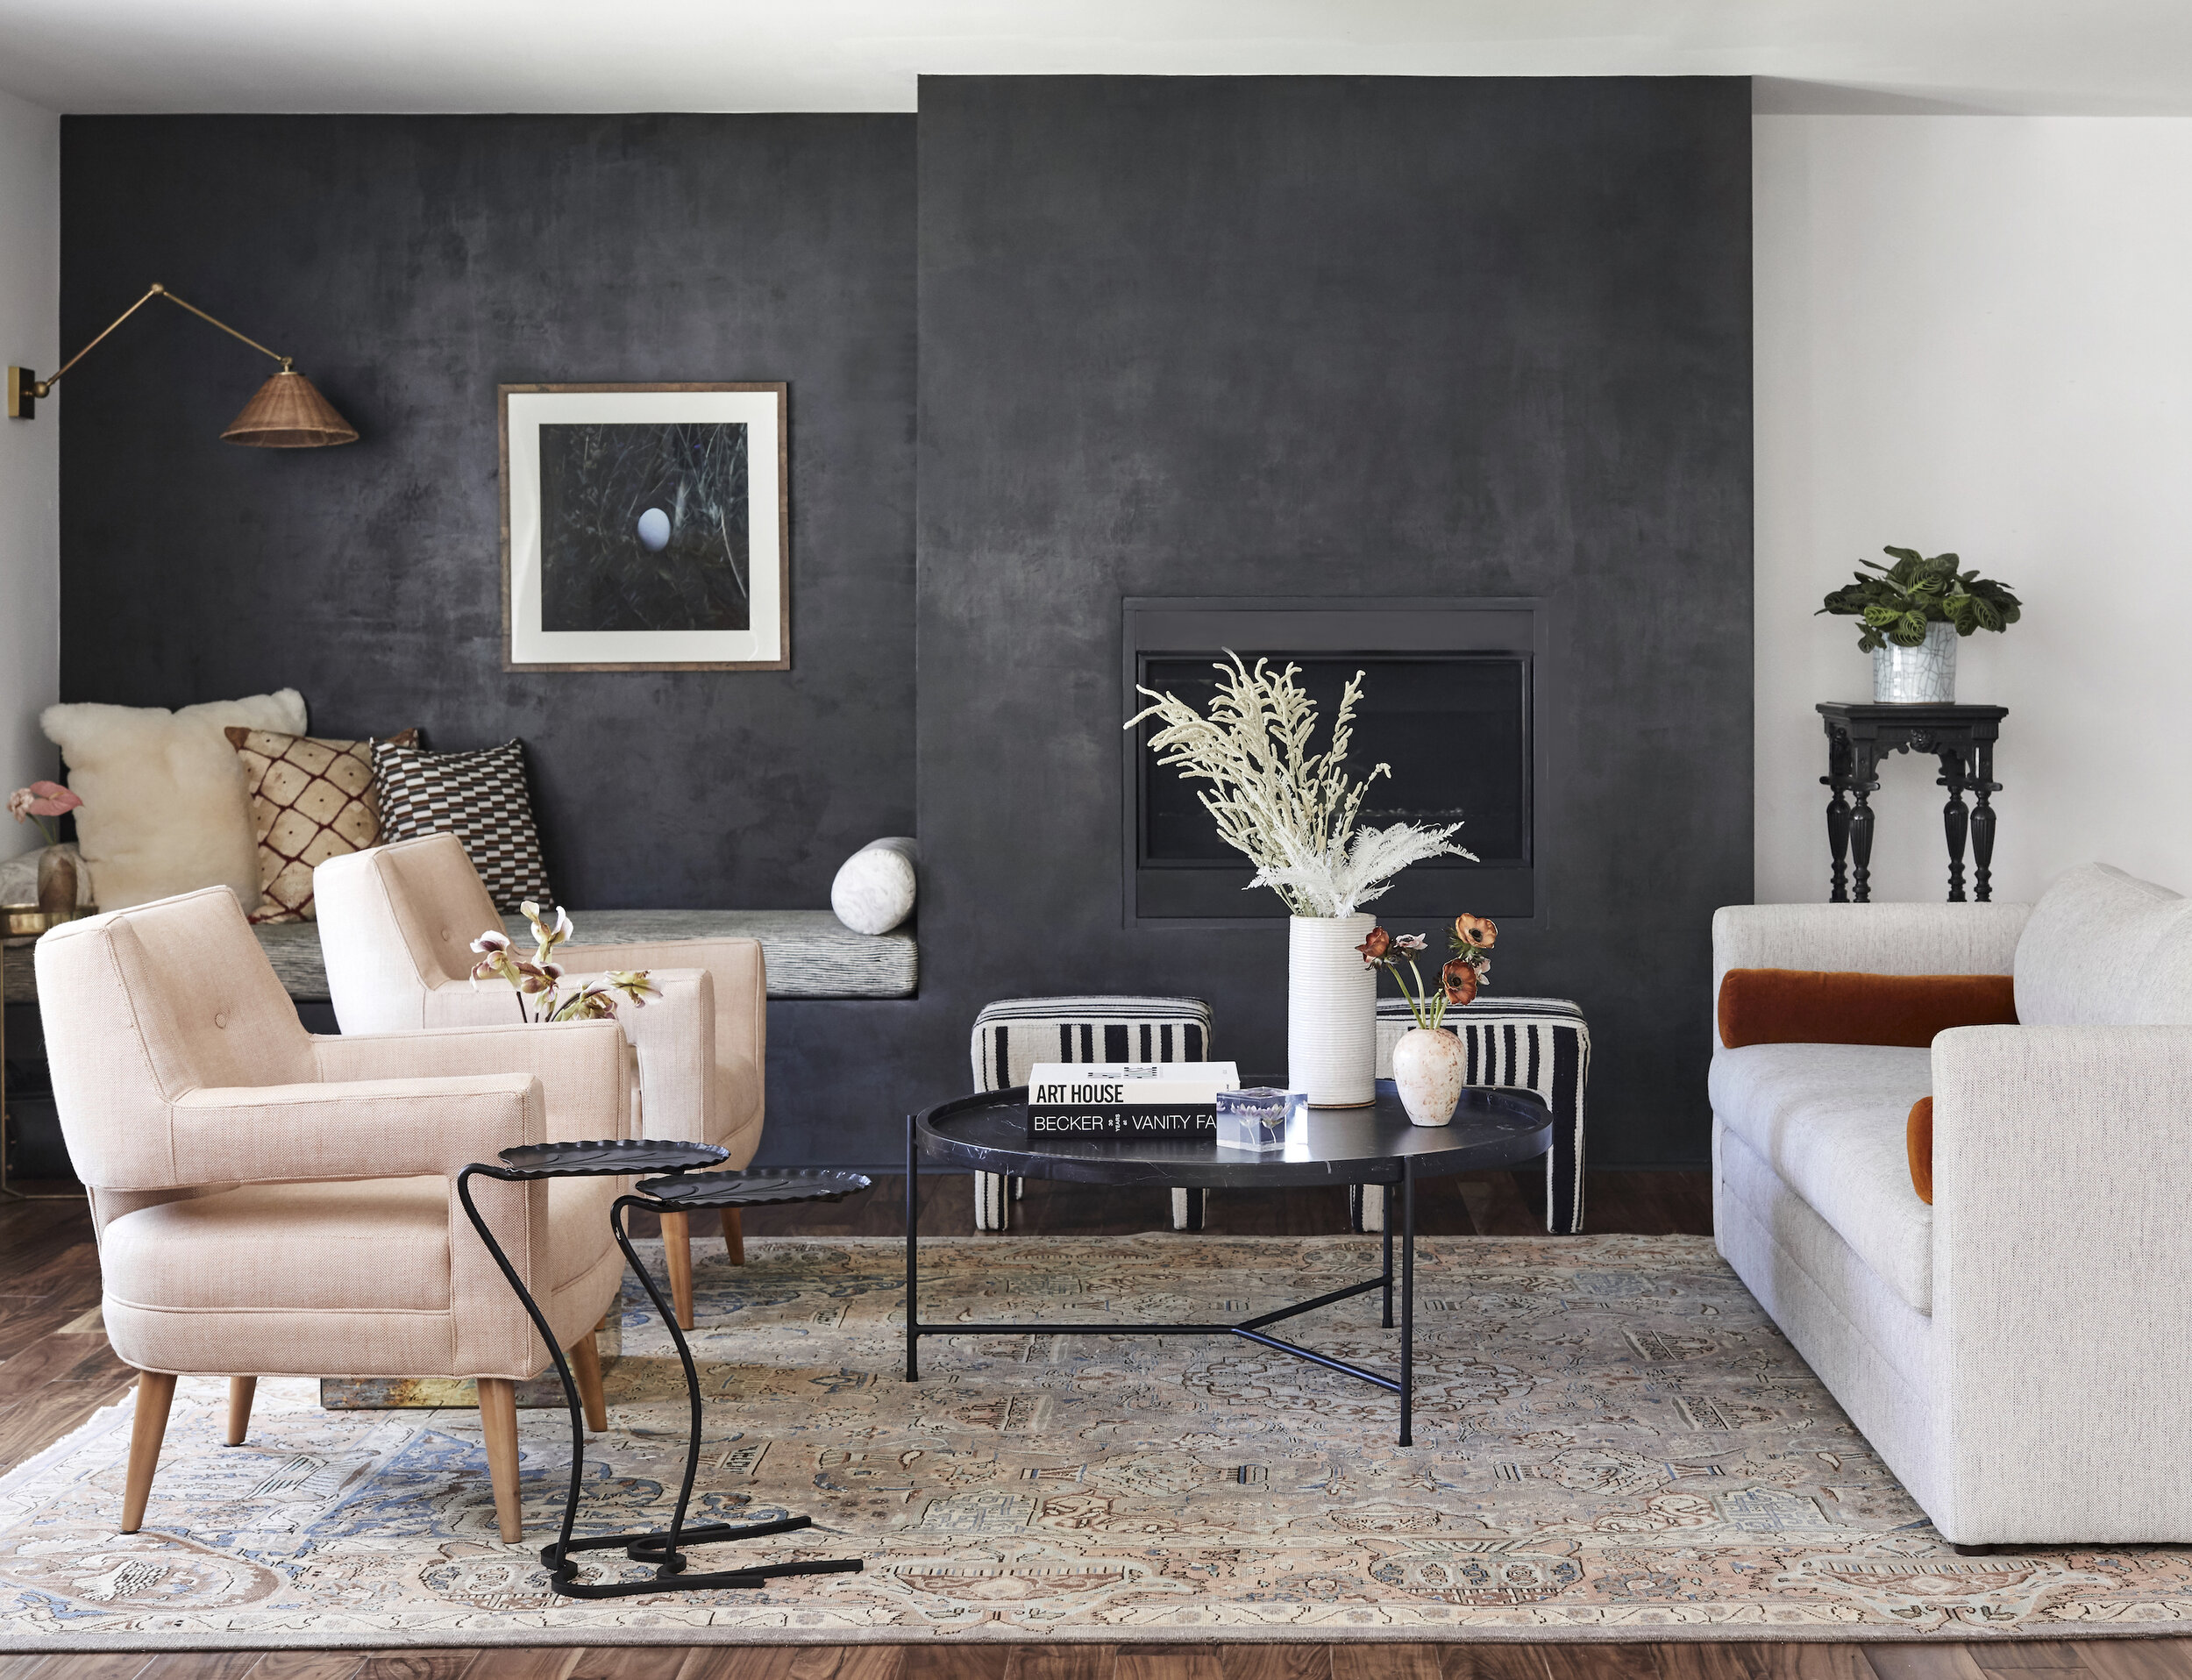 Living room interior by stefani stein with fade to black roman clay walls photography by jenna peffley